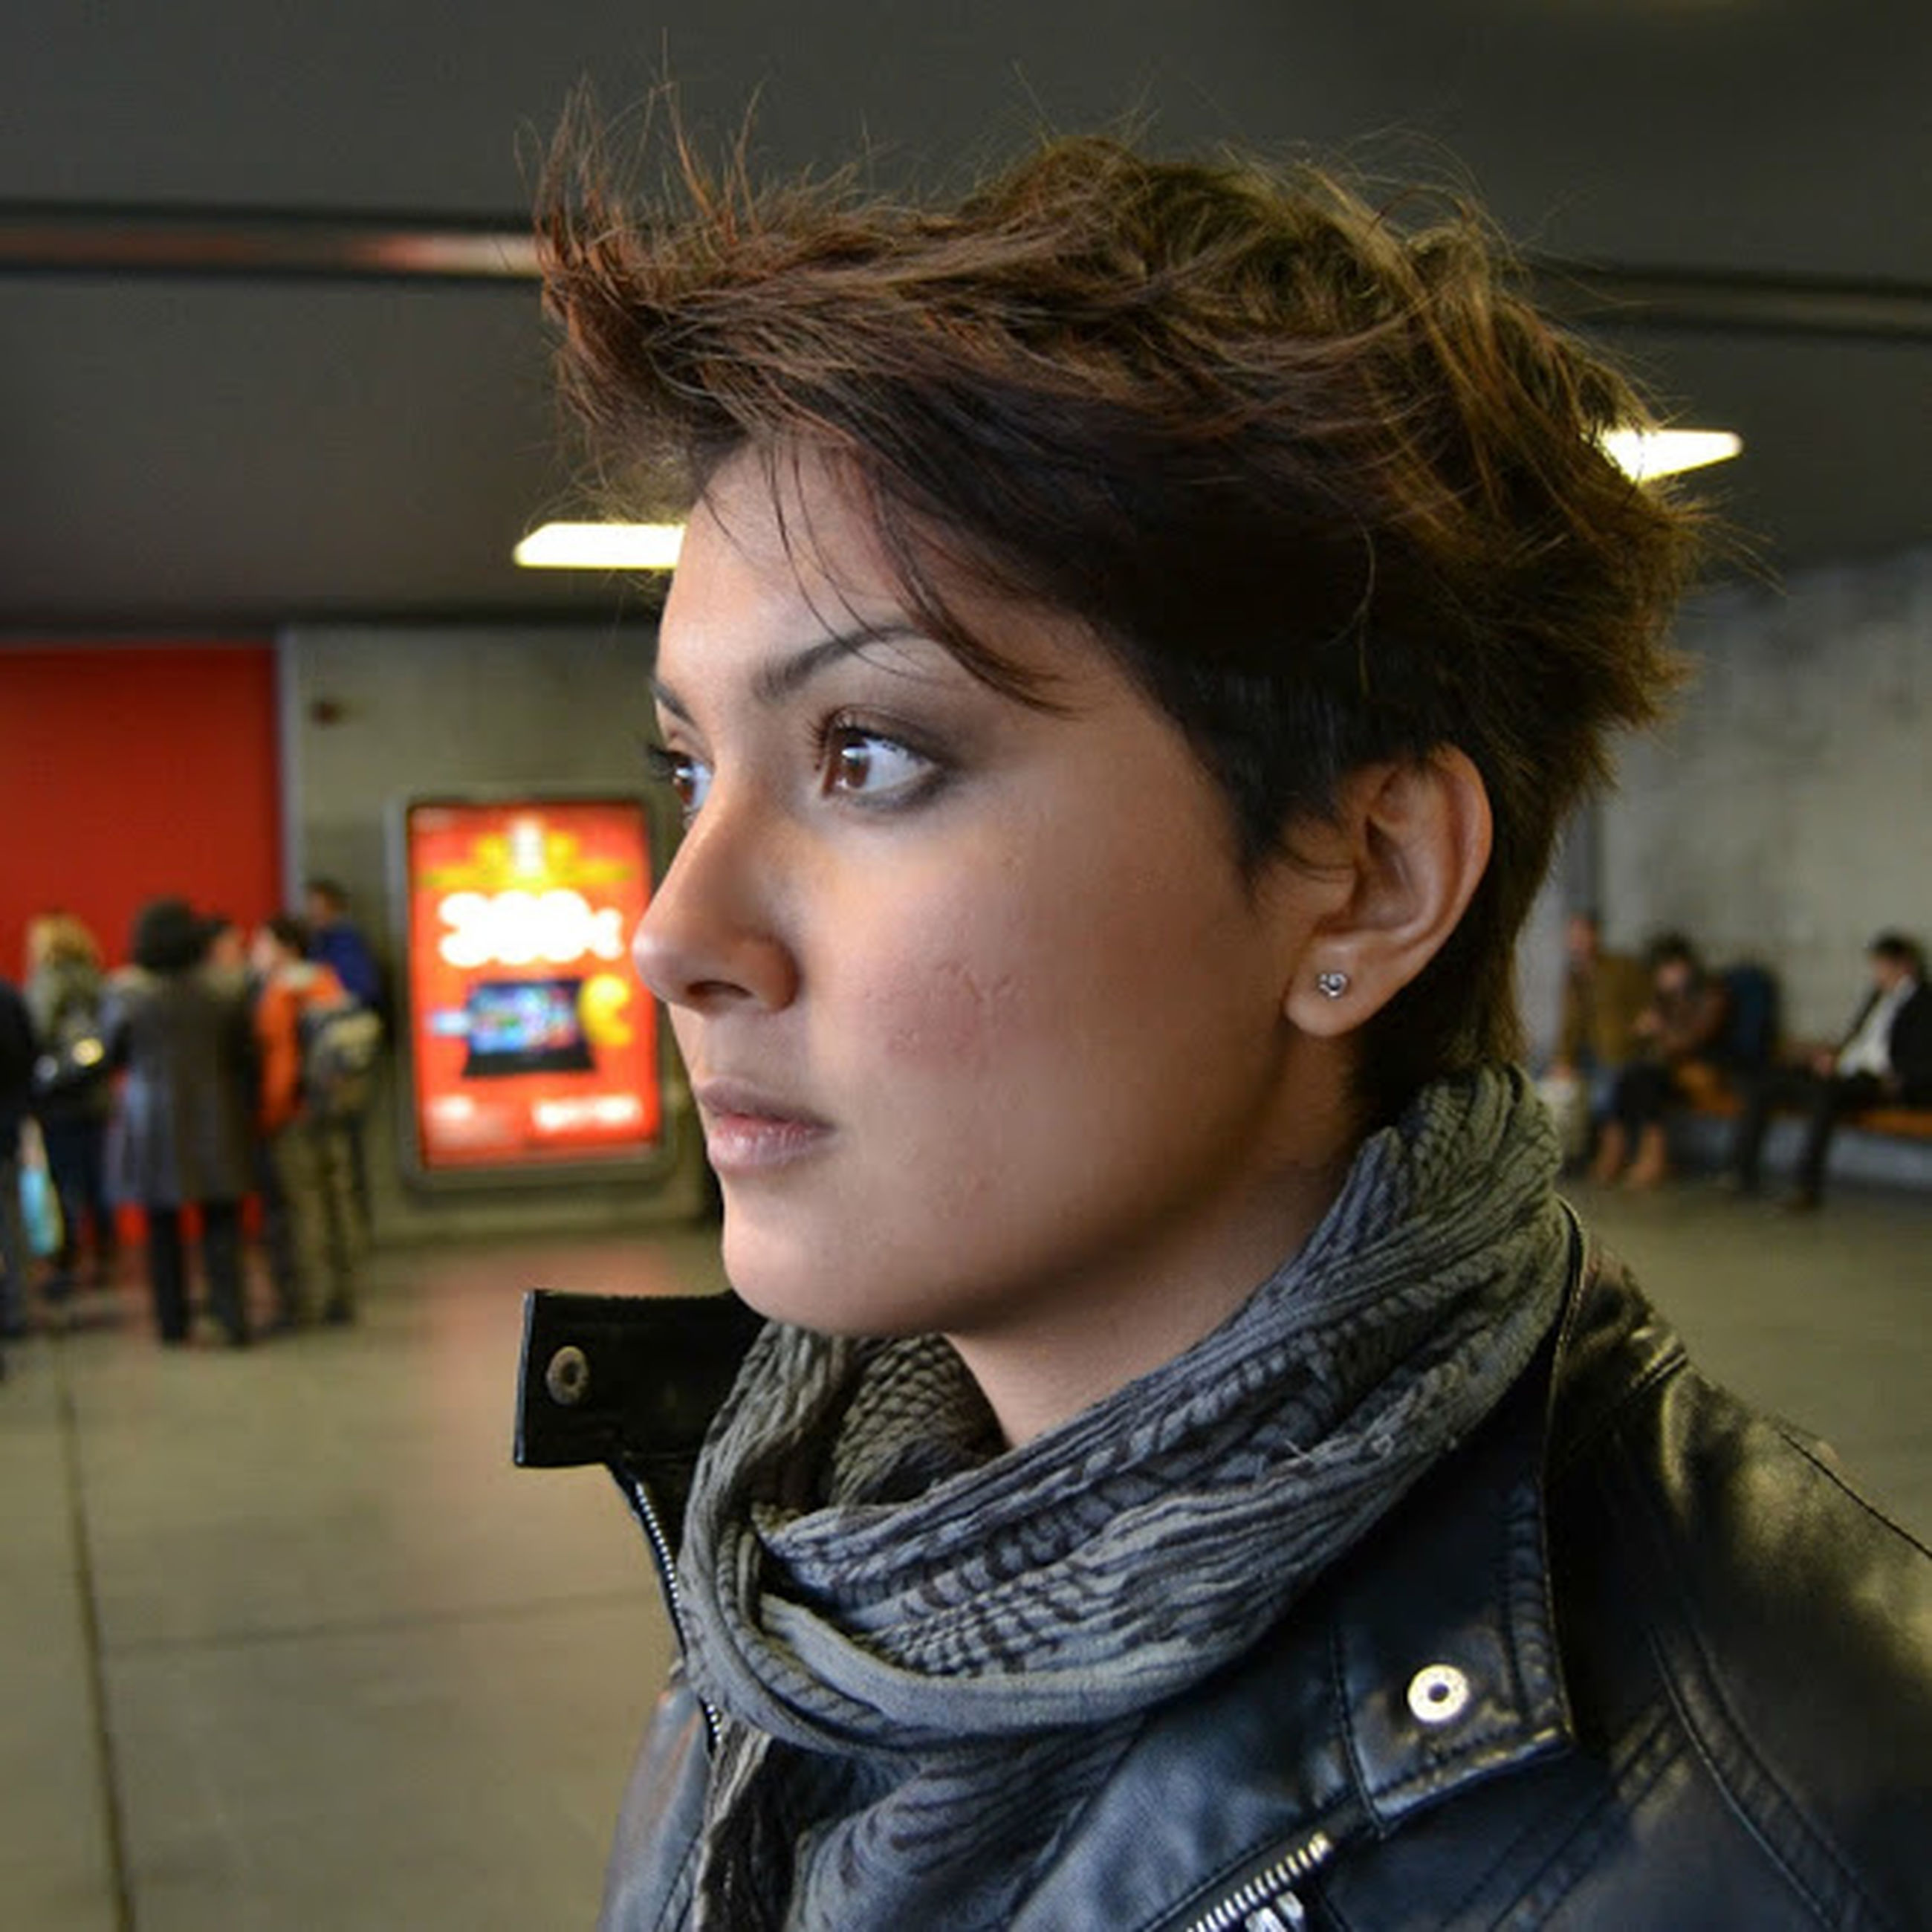 person, young adult, lifestyles, casual clothing, front view, looking at camera, portrait, leisure activity, focus on foreground, headshot, young women, smiling, indoors, side view, standing, head and shoulders